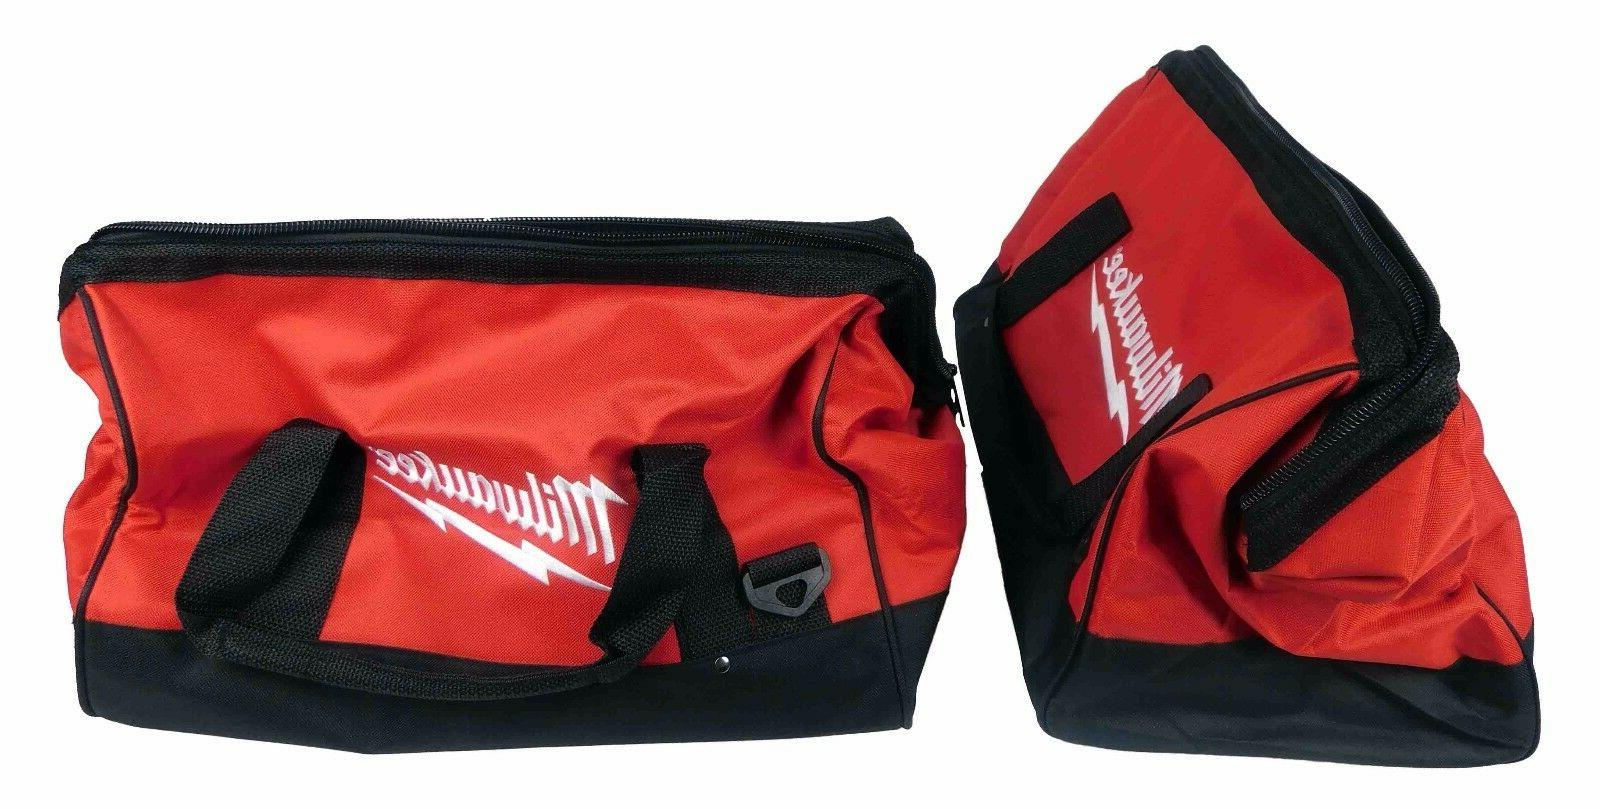 Milwaukee 6-Pocket Duty Industrial Carrying Tool Bag